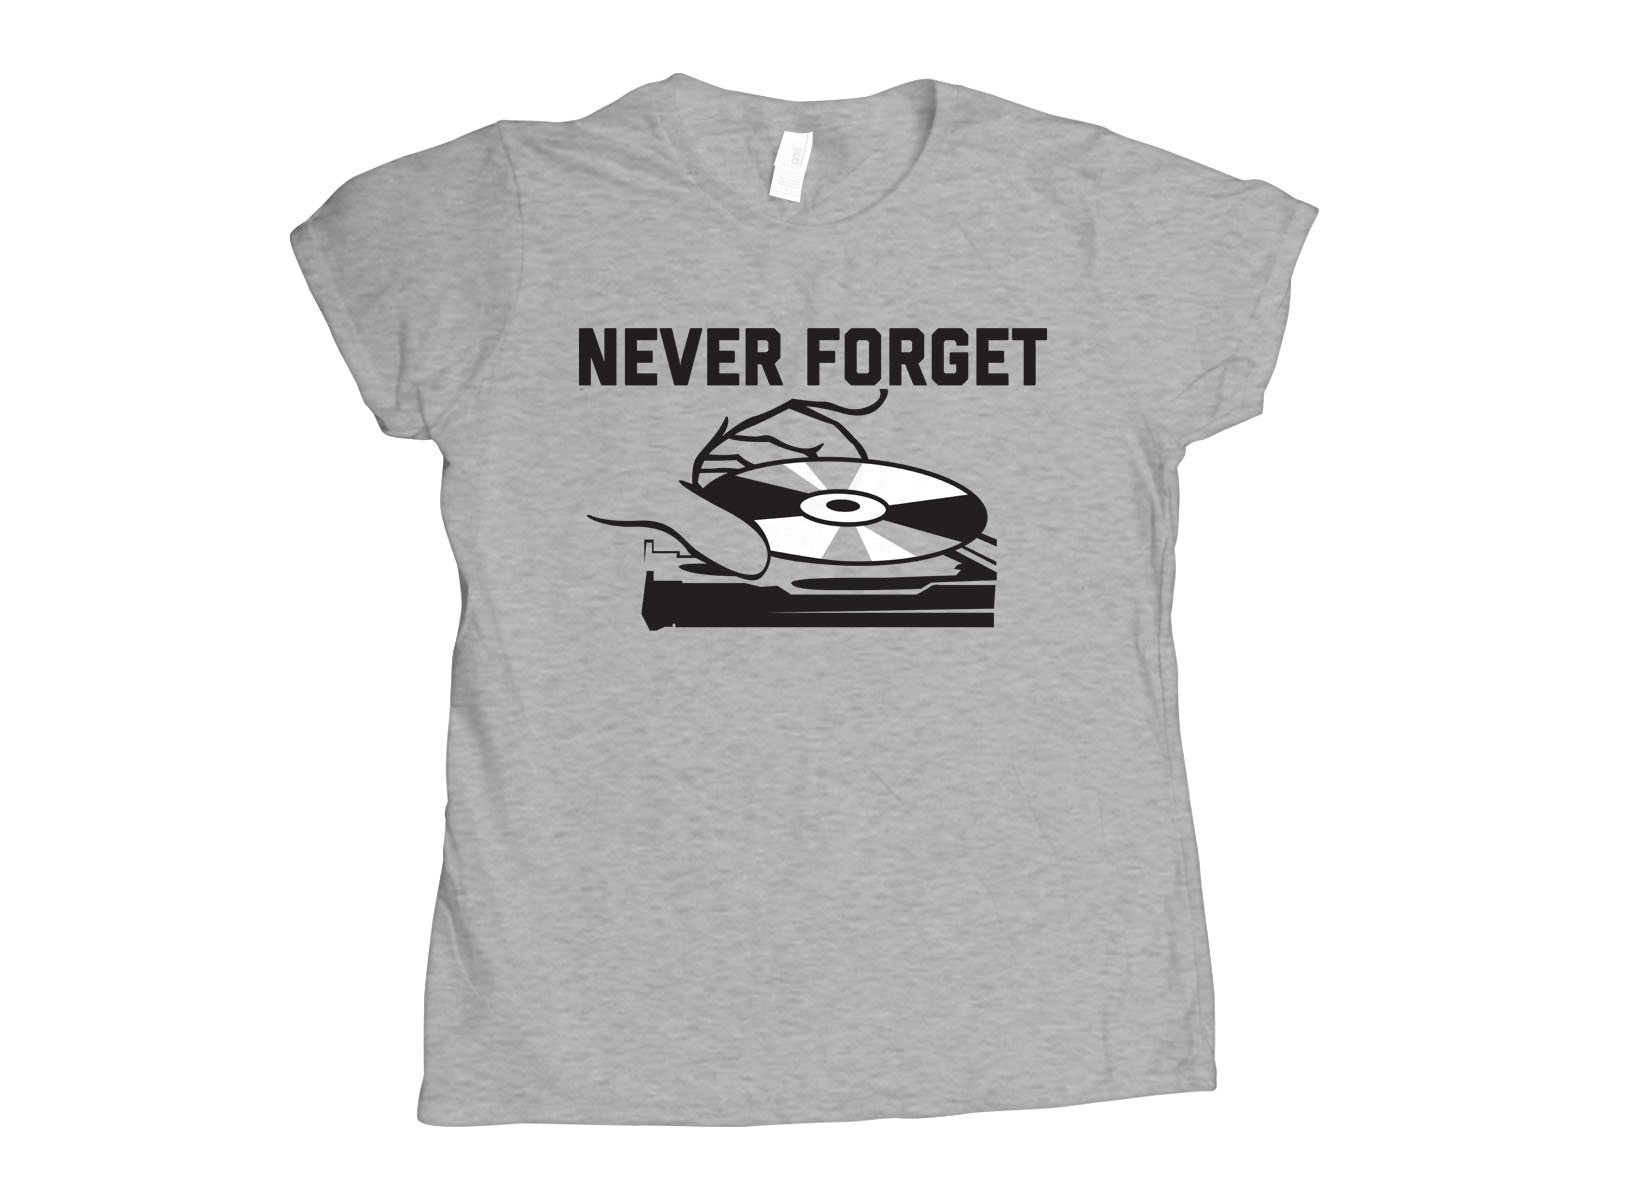 Never Forget on Womens T-Shirt